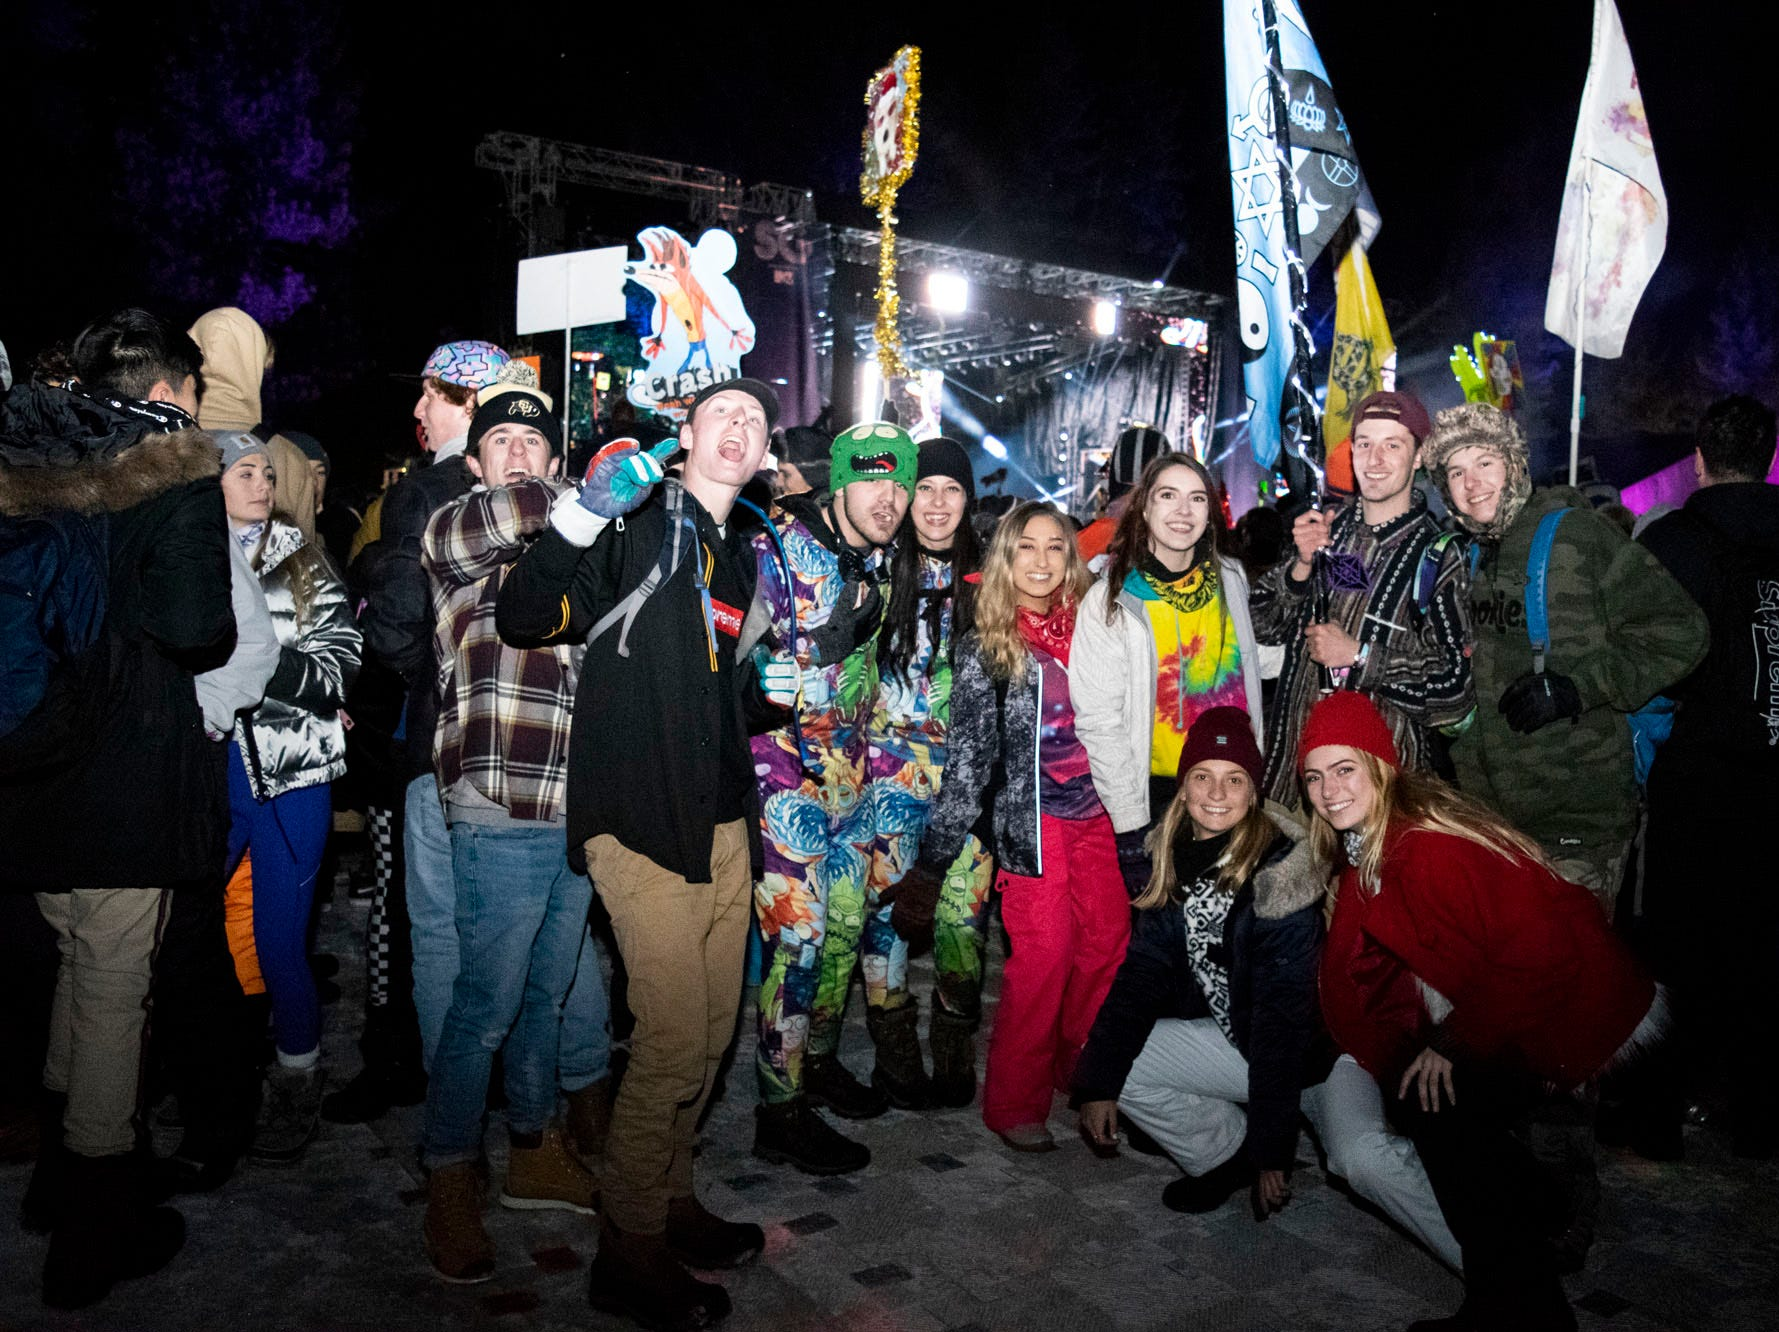 Scenes from the Snowglobe Music Festival on Saturday, Dec. 29, 2018. South Lake Tahoe, Calif.